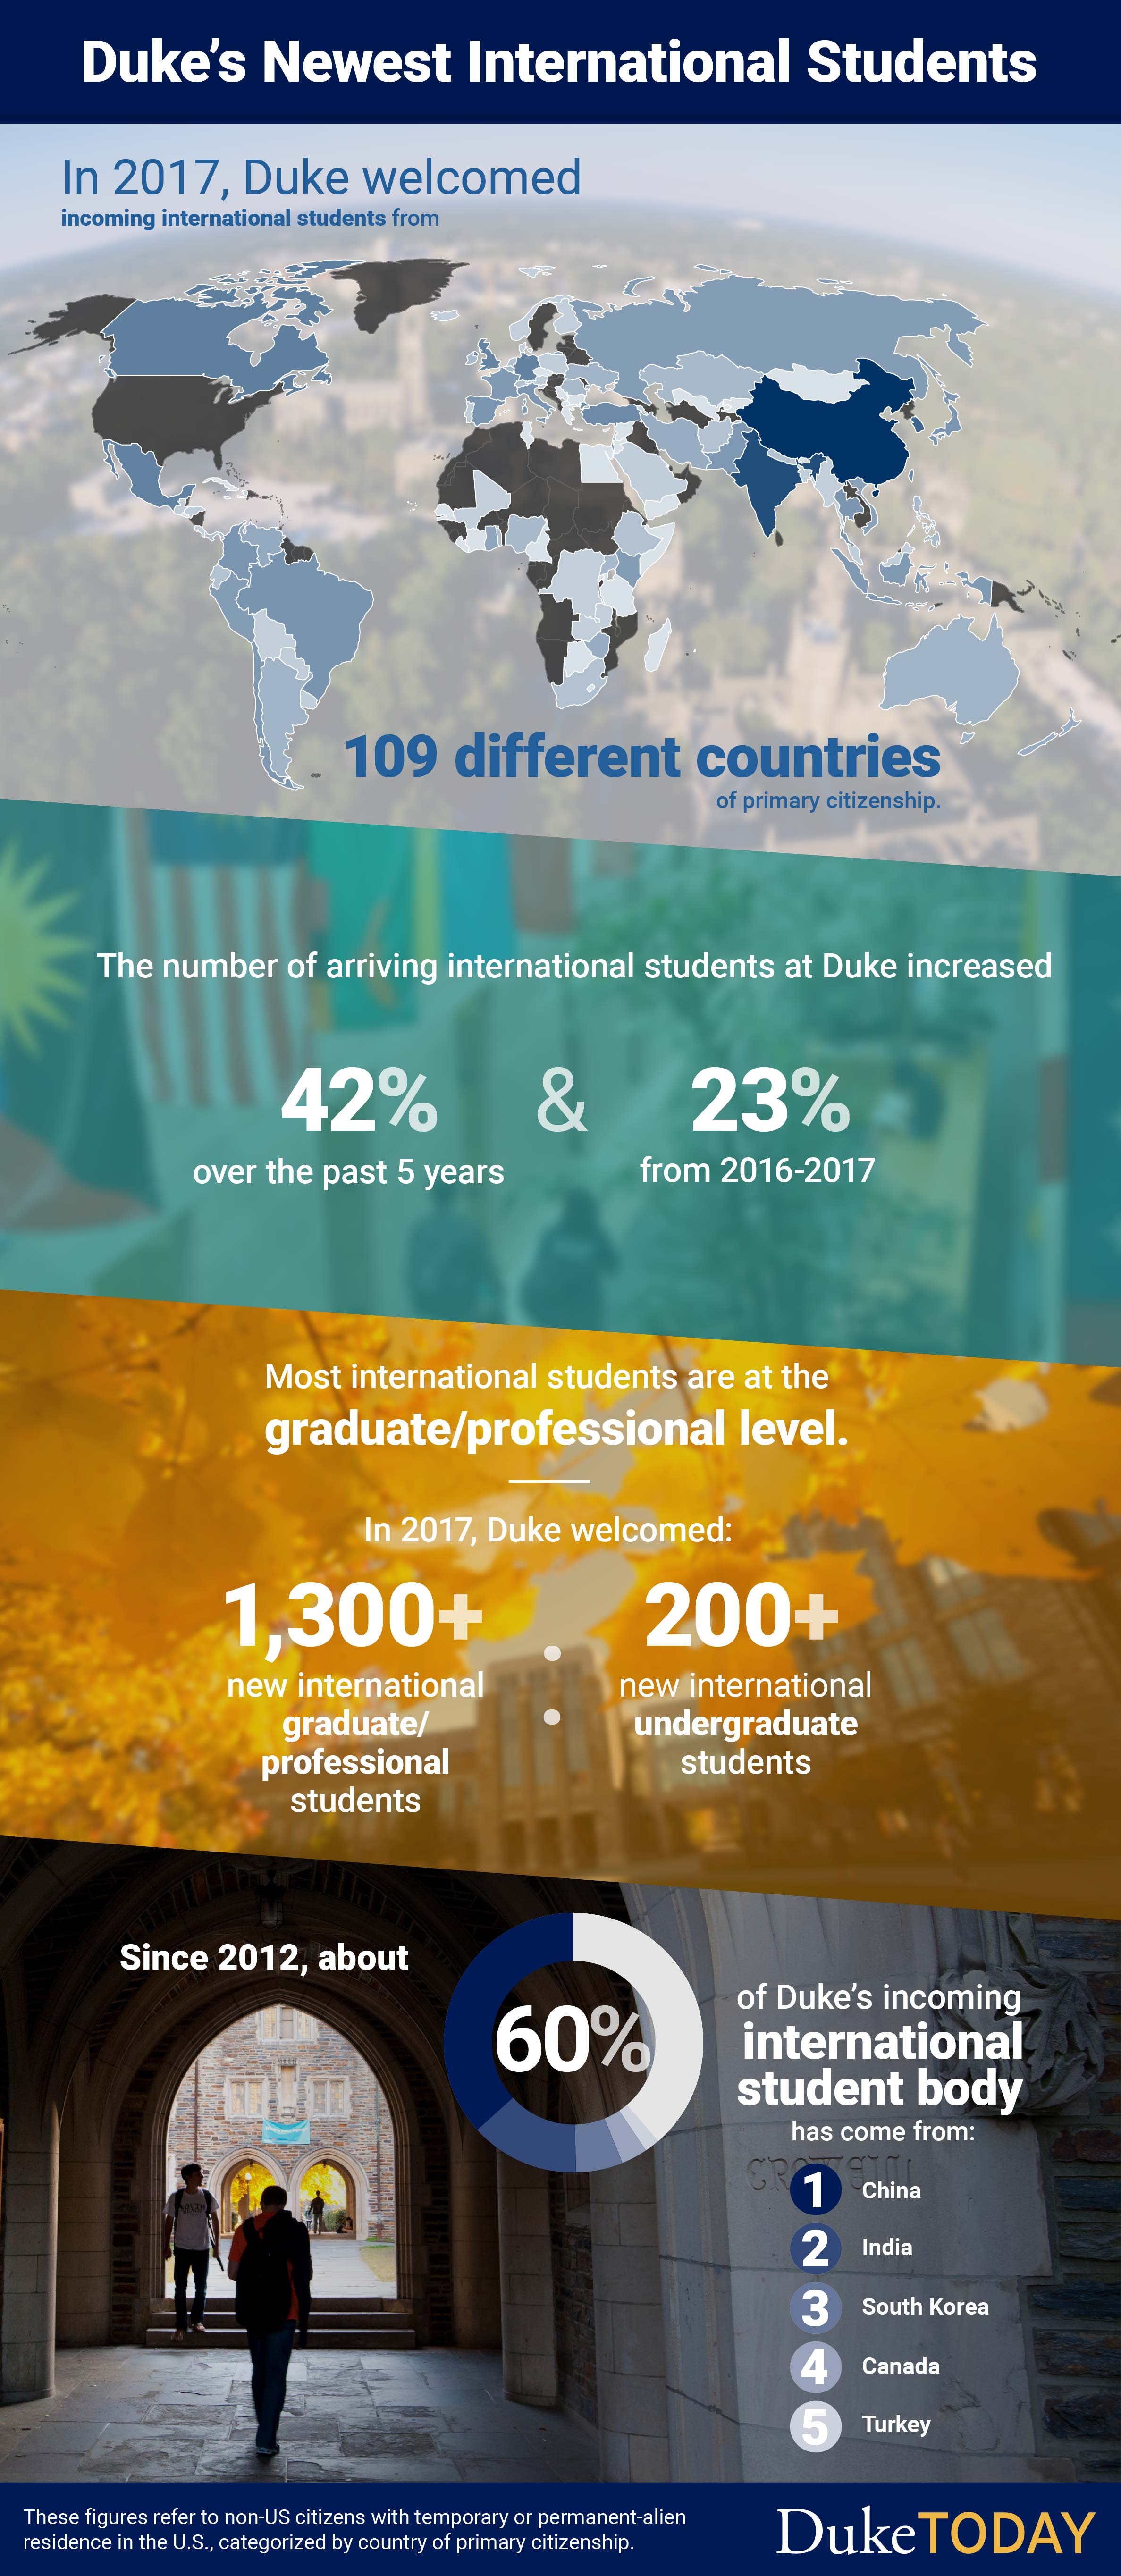 An infographic about Duke's Newest International Students: In 2017, Duke welcomed incoming international students from 109 different countries of primary citizenship. The number of arriving international students at Duke increased 42% over the past 5 years and 23% from 2016 to 2017. Most international students are at the graduate/professional level. In 2017, Duke welcomed 1,300+ new international graduate/professional students and 200+ new international undergraduate students. Since 2012, about 60% of Duke's incoming international student body has come from China, India, South Korea, Canada and Turkey (in order by percent representation in Duke's international student body). These figures refer to non-US citizens with temporary or permanent-alien residence in the U.S., categorized by country of primary citizenship.